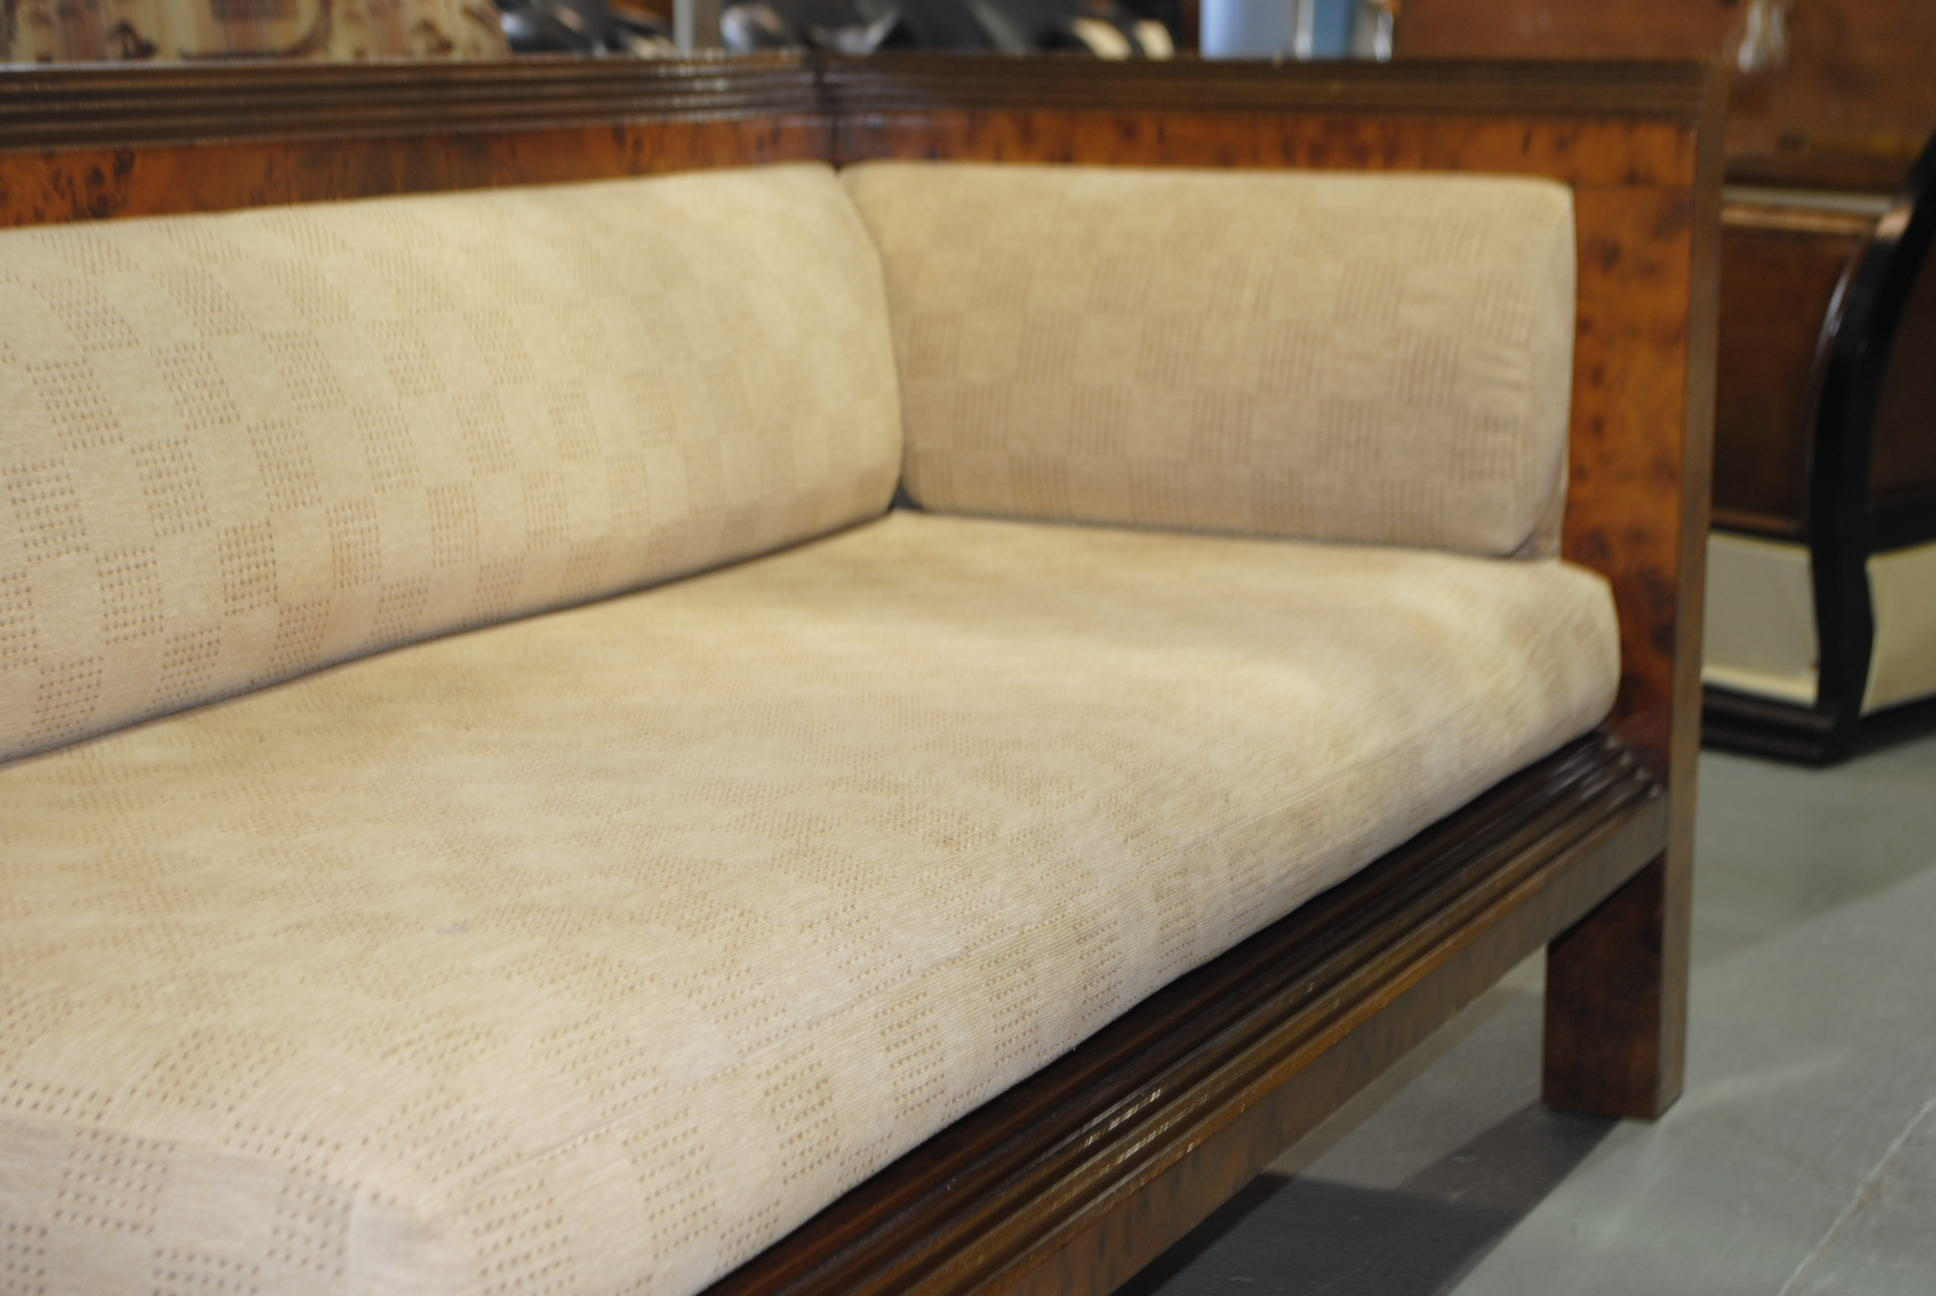 Art deco chaise cloud 9 art deco furniture sales for Chaise furniture sale